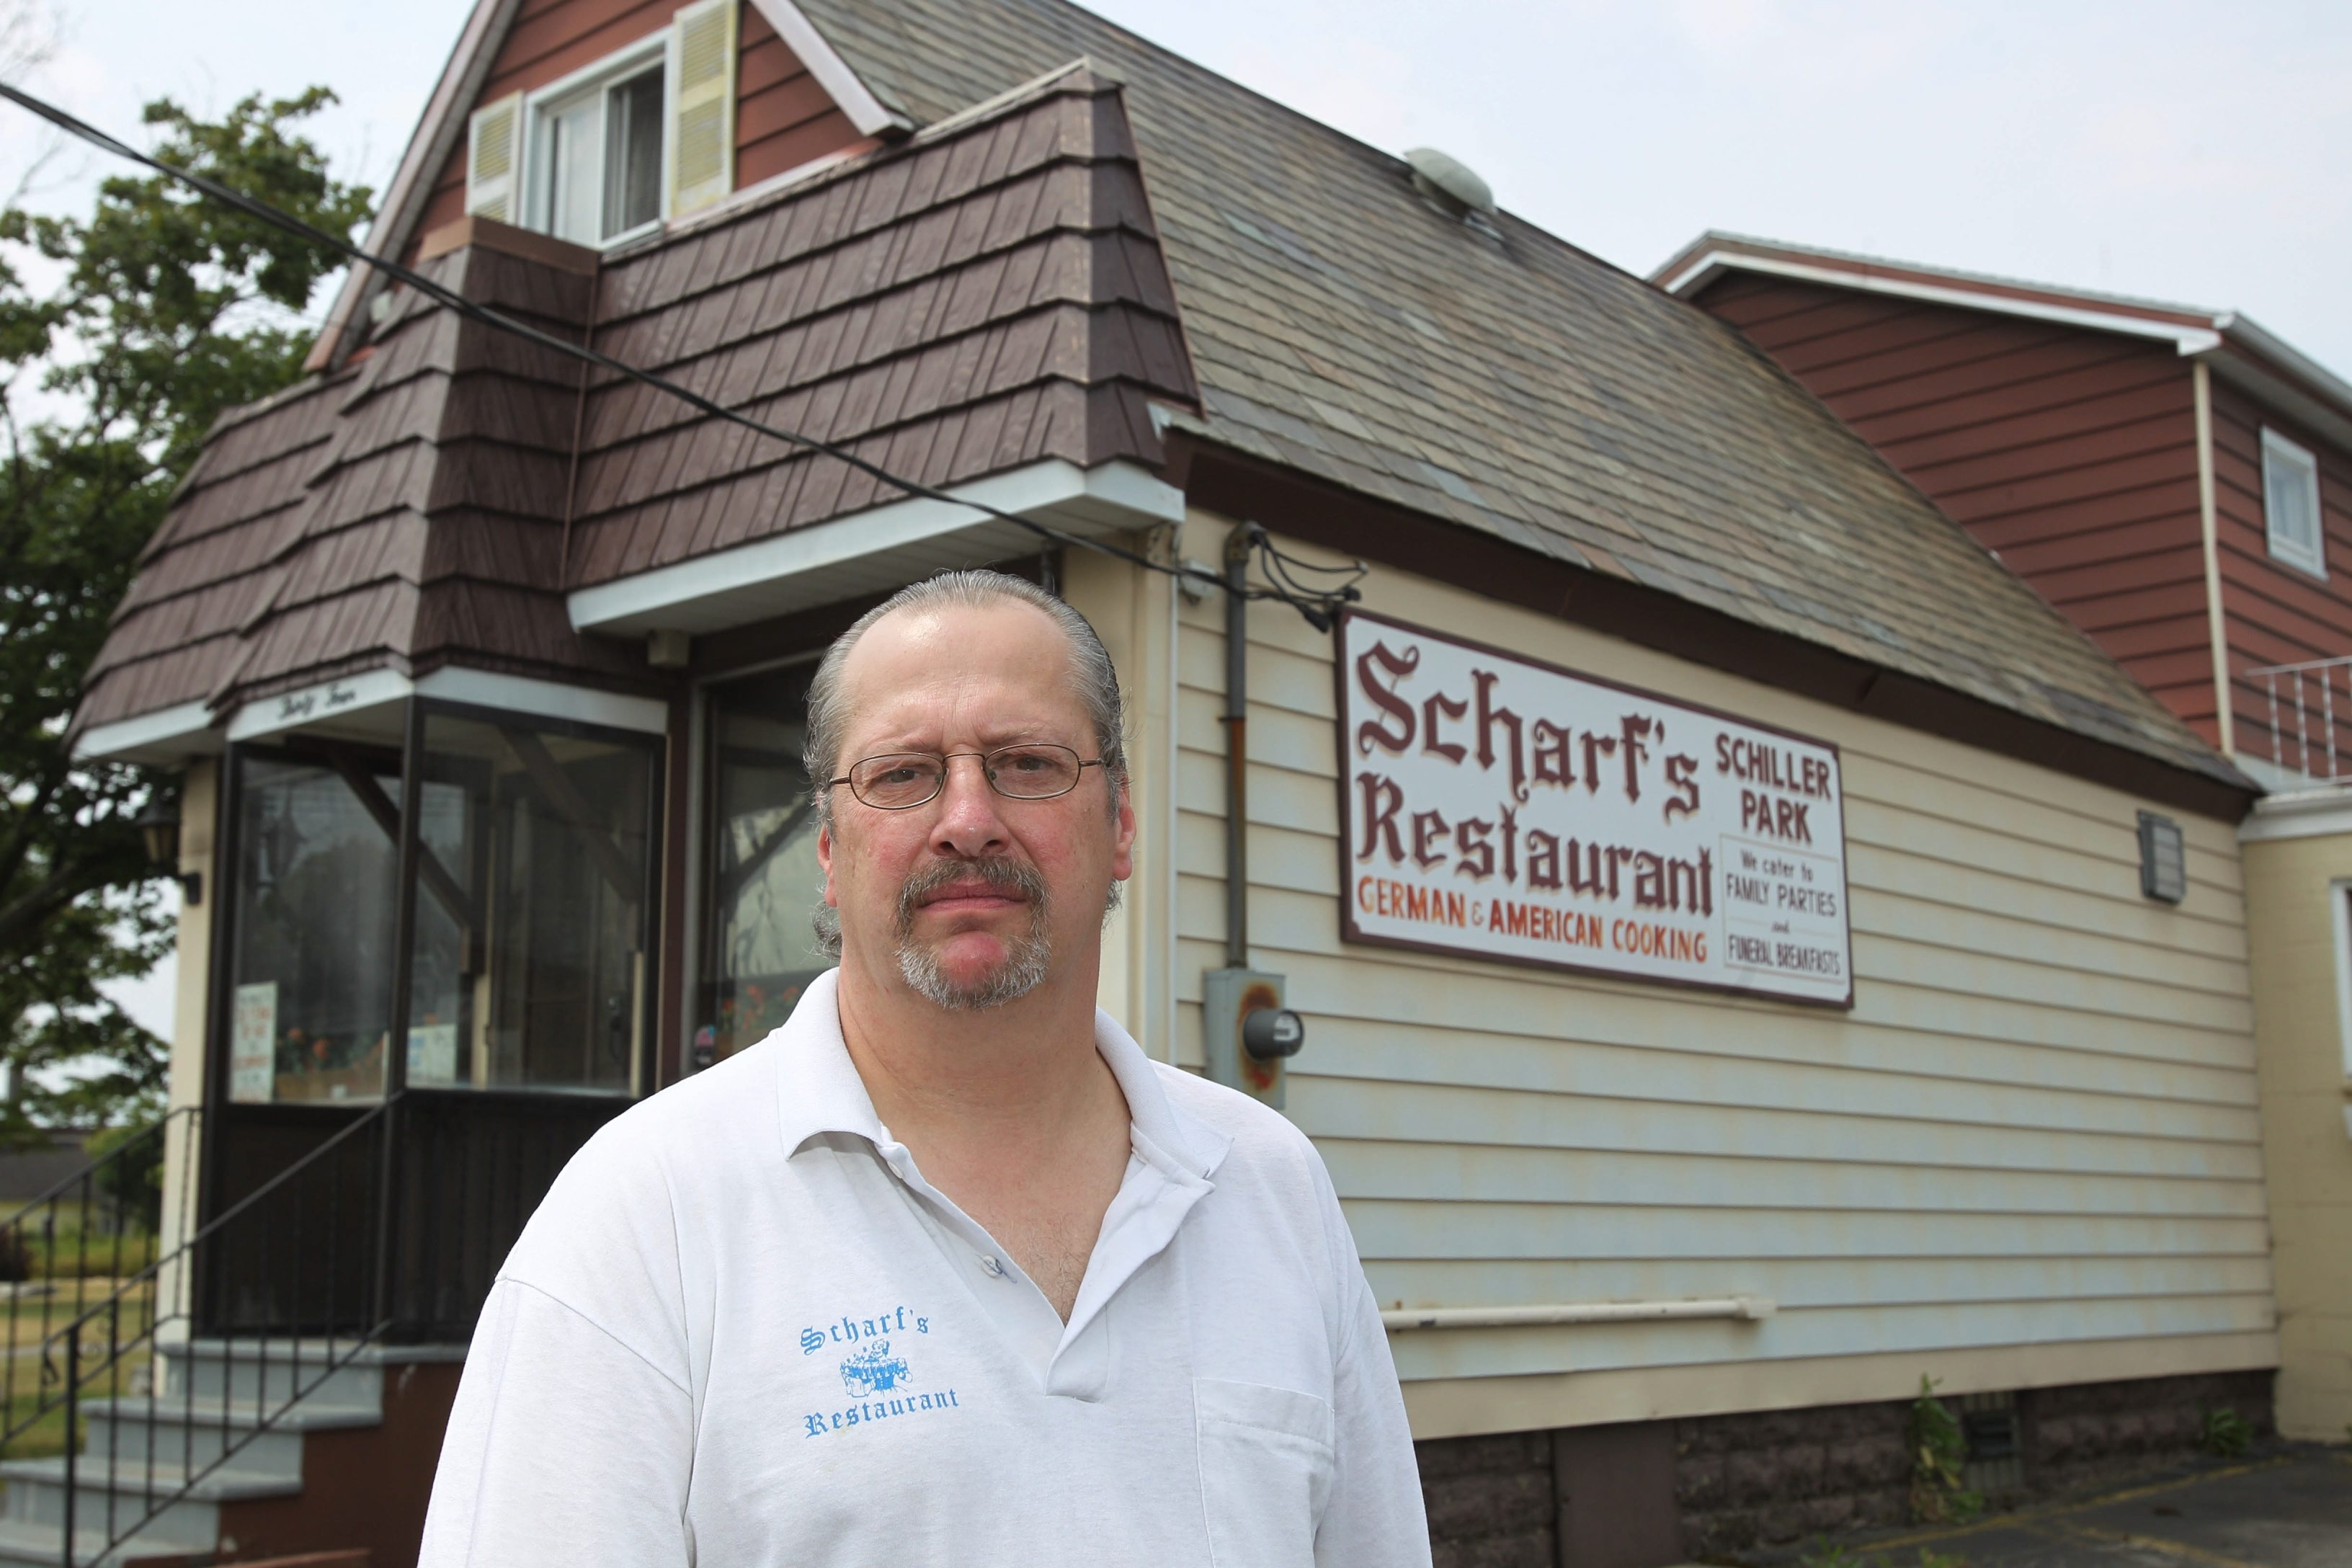 Jerry Scharf, owner of Scharf's Restaurant, has moved the business from its longtime location on  Crossman St. (above), to a site on Clinton Street in West Seneca.  {Sharon Cantillon / Buffalo News}